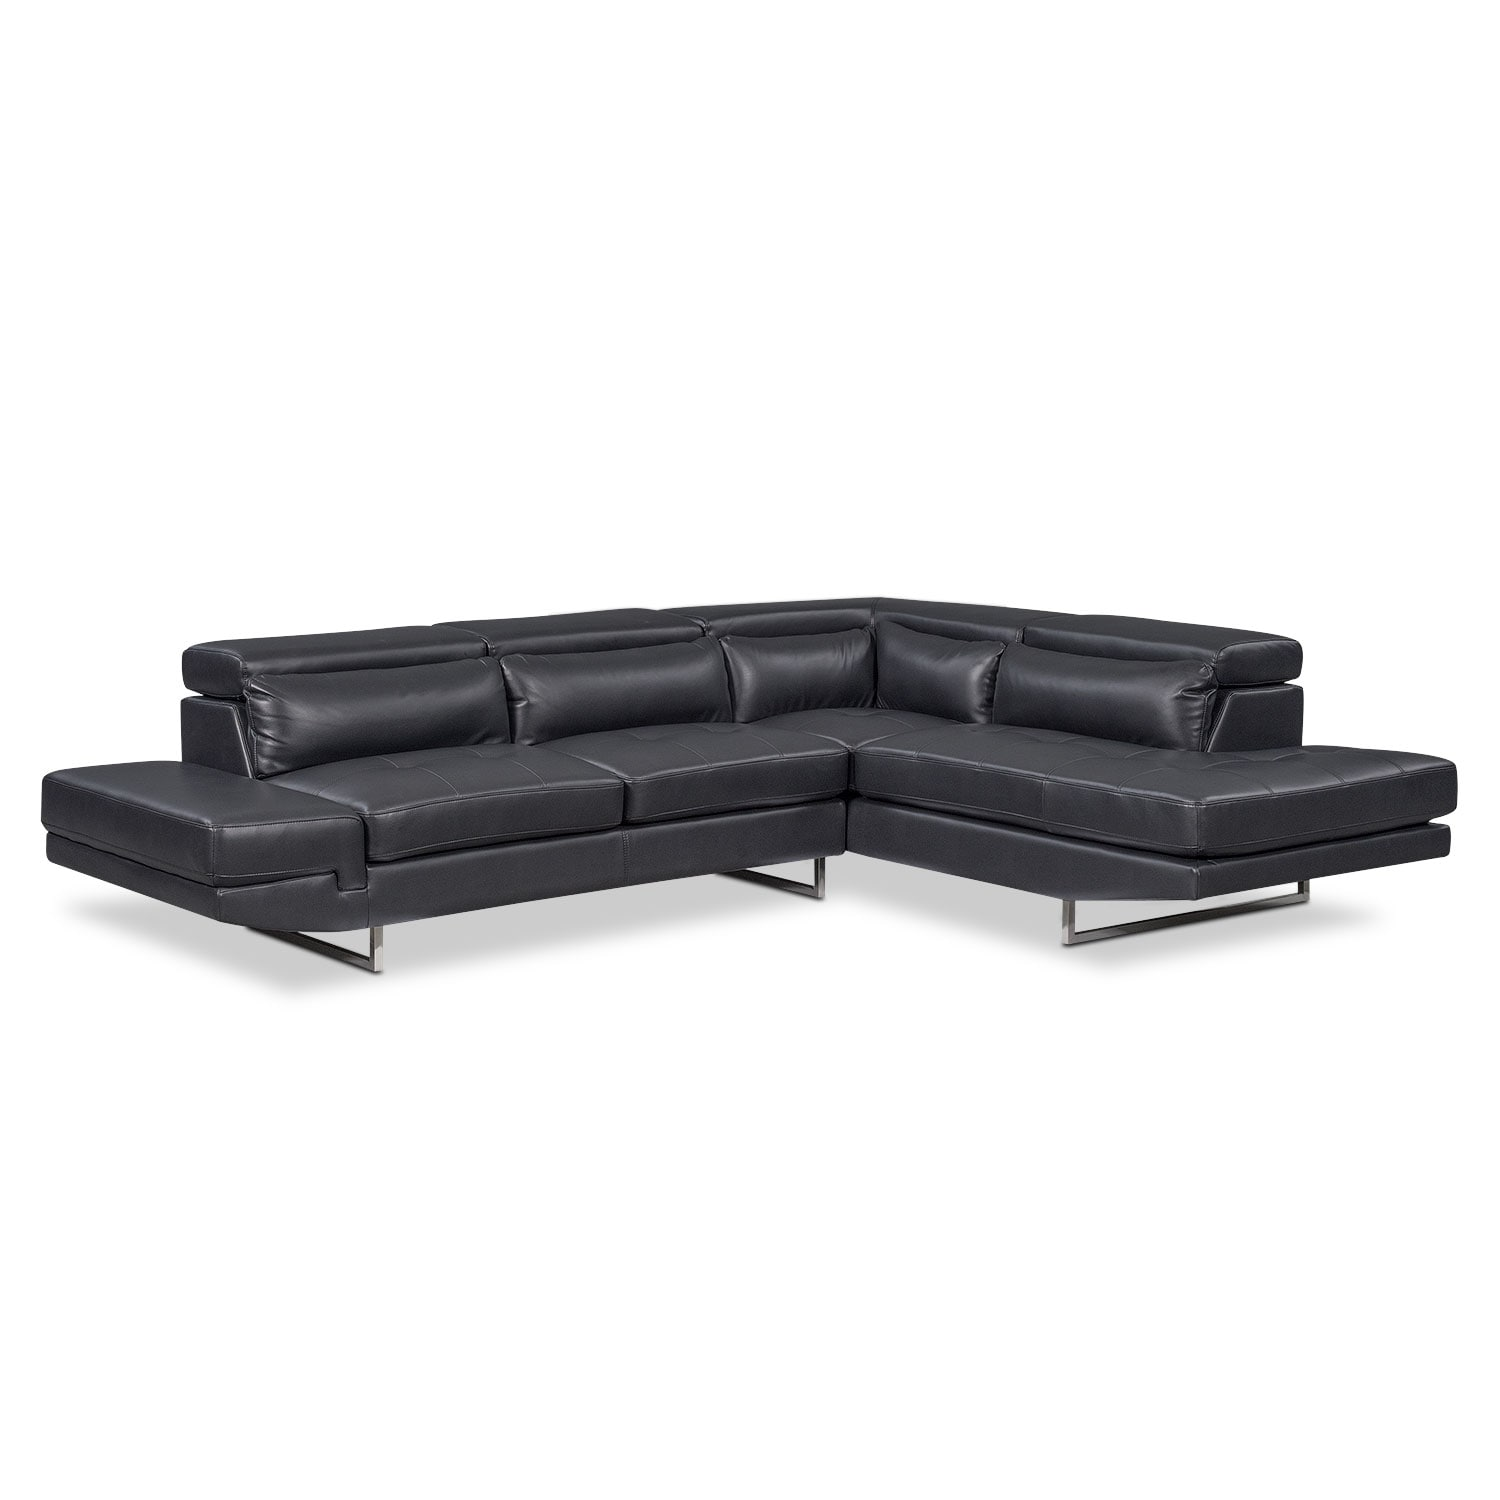 Torino 2 piece sectional with right facing chaise for 2 piece sectional sofa with chaise